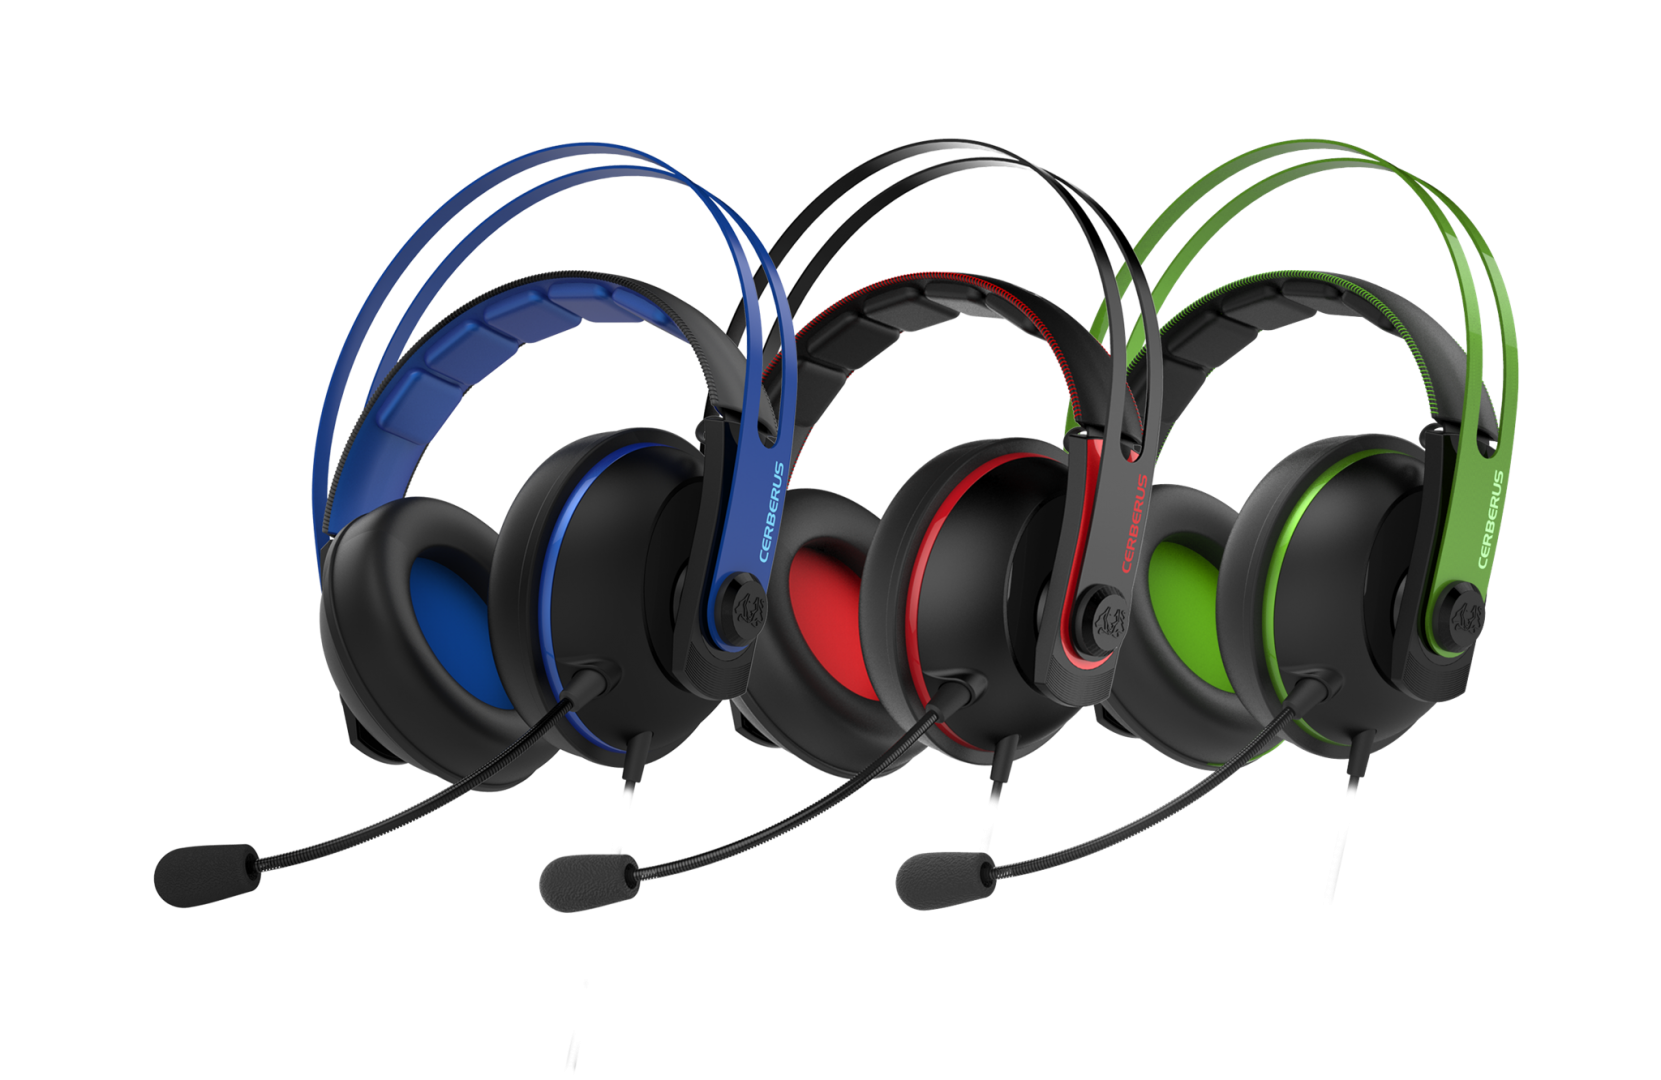 Ceberus V2 gaming headset_3 colors